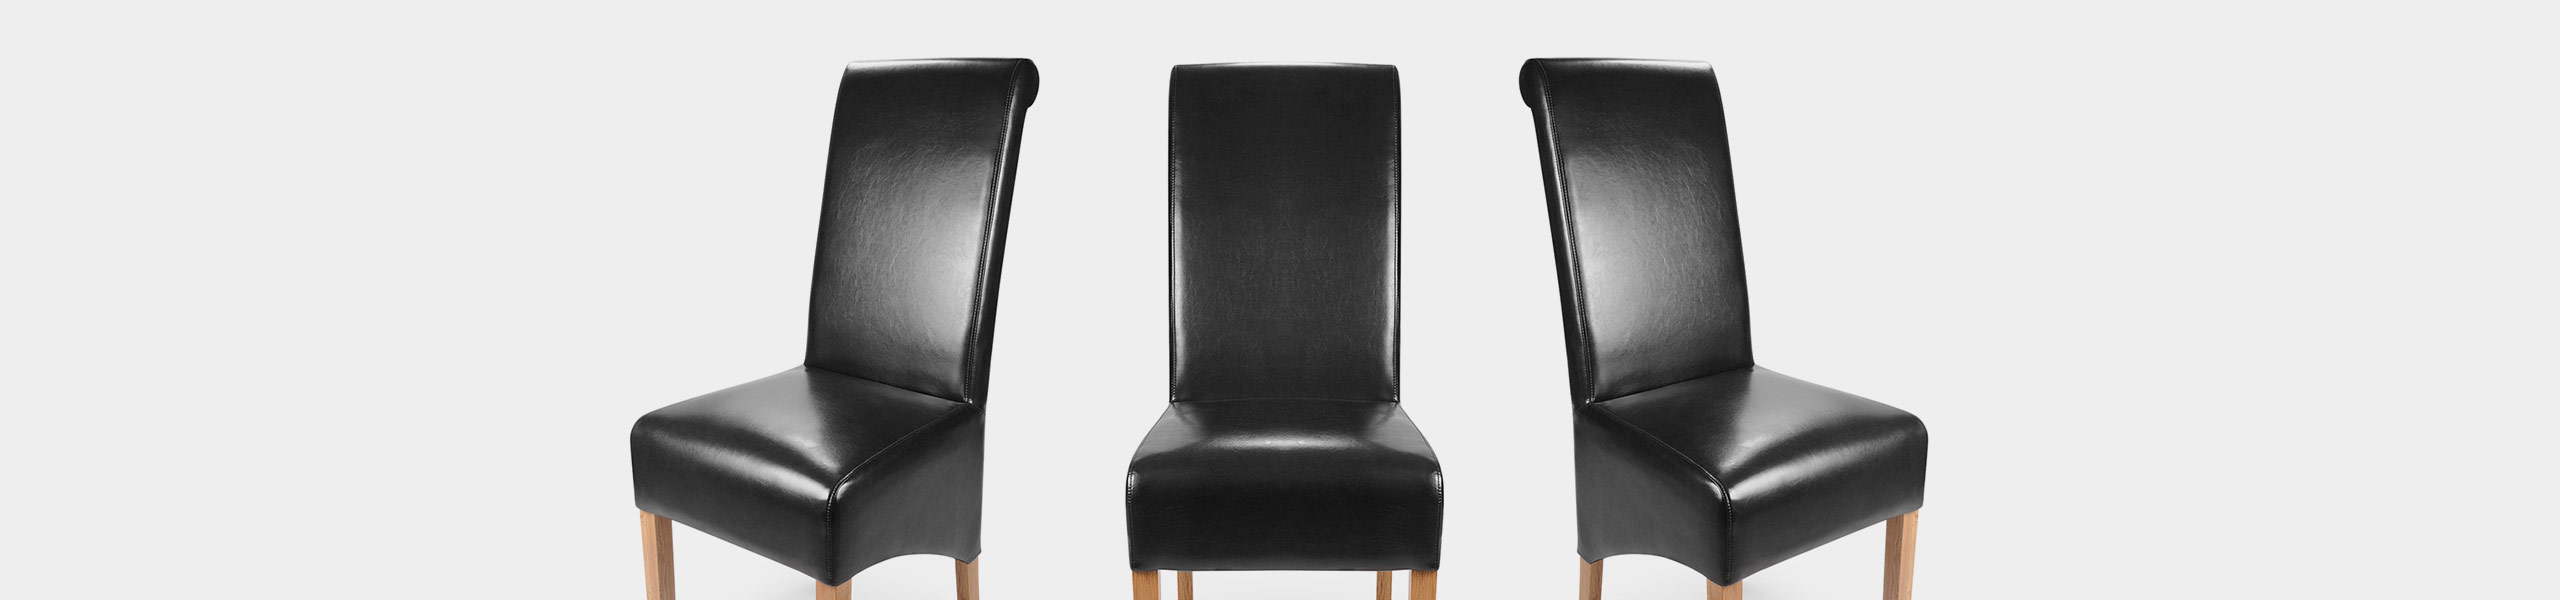 Krista Dining Chair Black Leather Video Banner